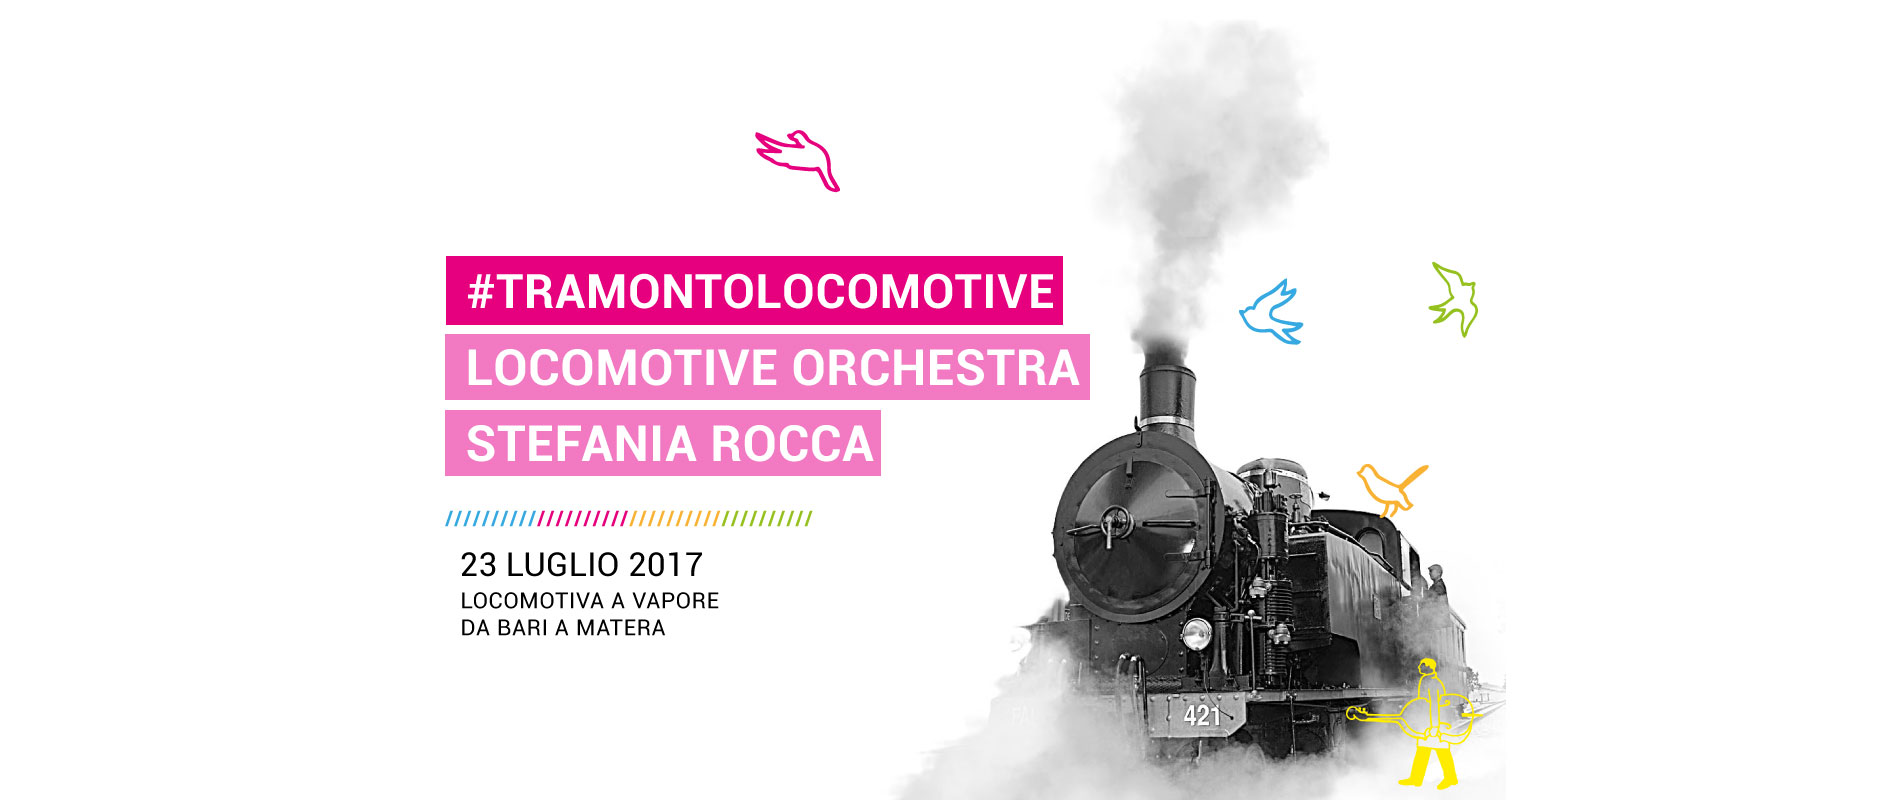 Tramontolocomotive